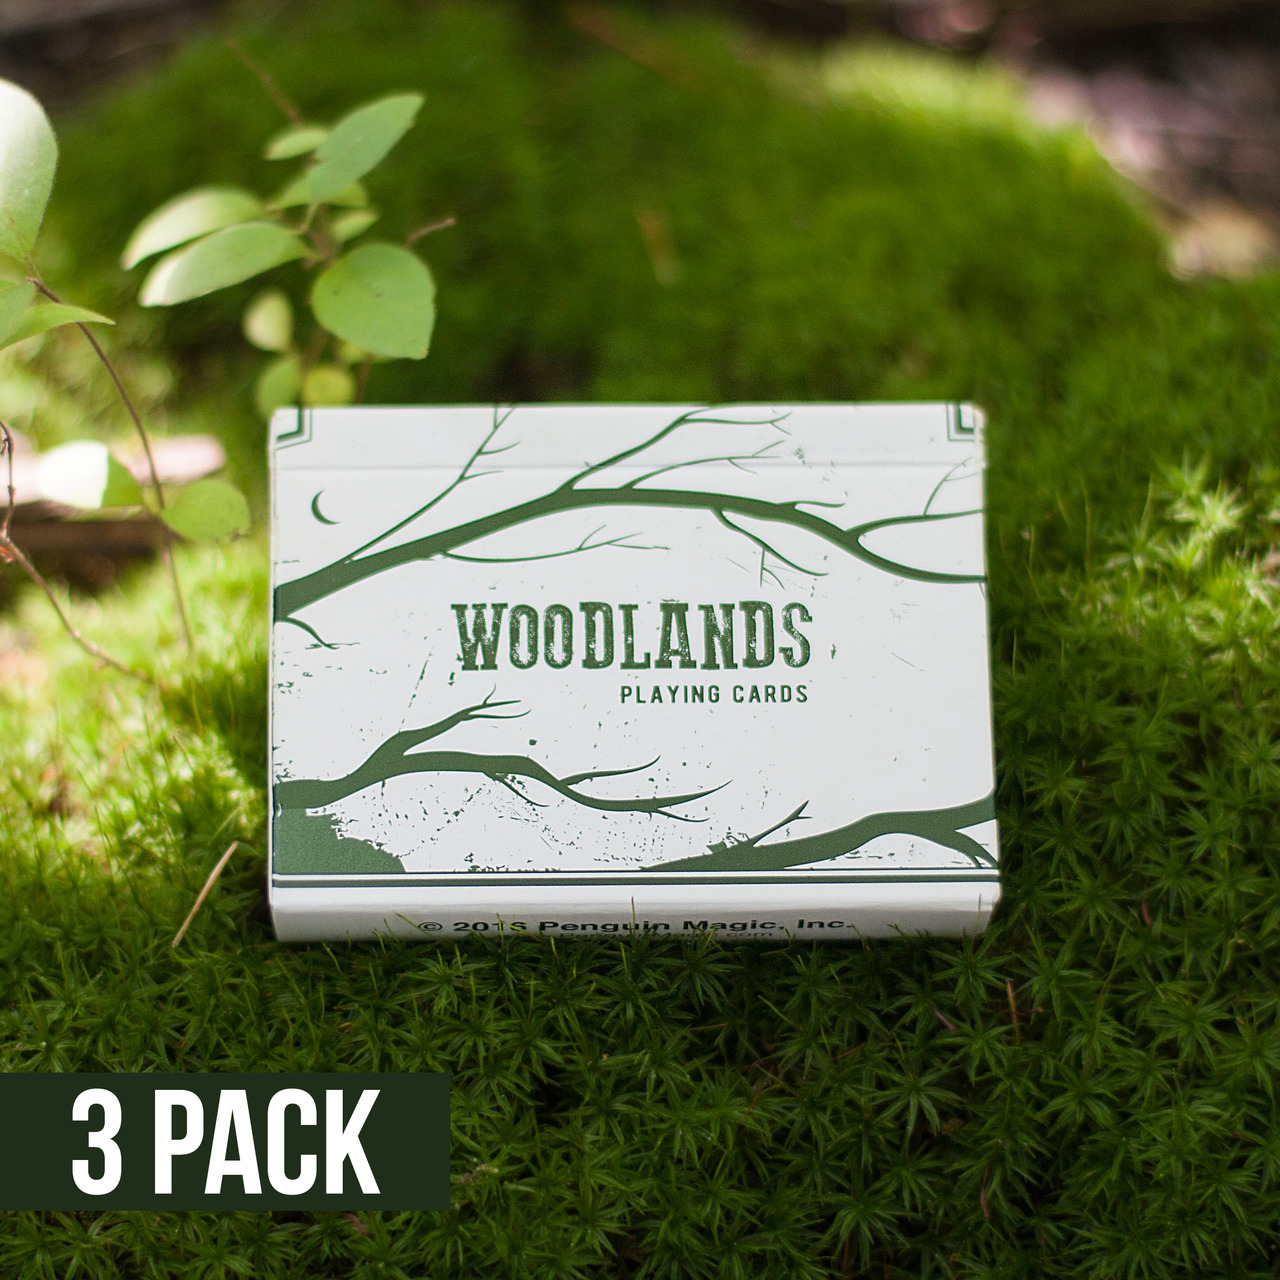 Woodlands Playing Cards 3 Pack